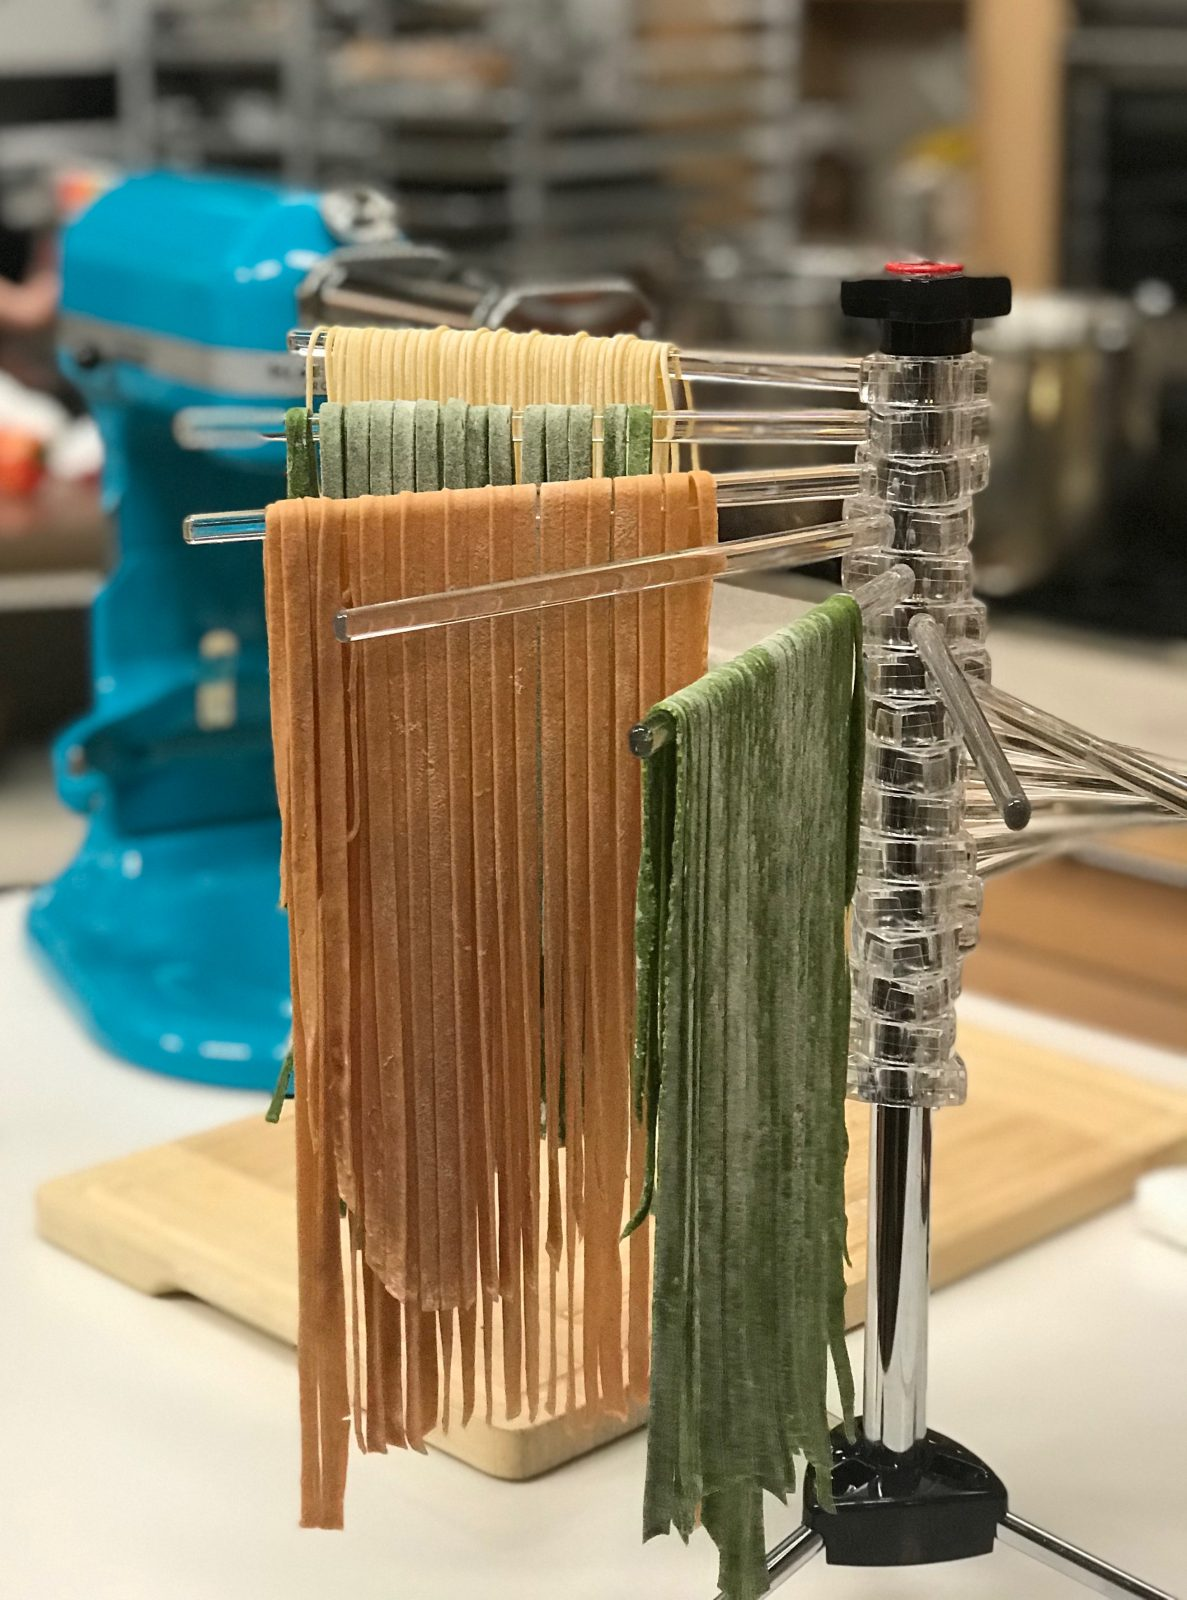 KitchenAid pasta drying rack with plain, tomato and spinach spaghetti and fettucini pasta hanging from rack. KitchenAid stand mixer with pasta roller attachment in background